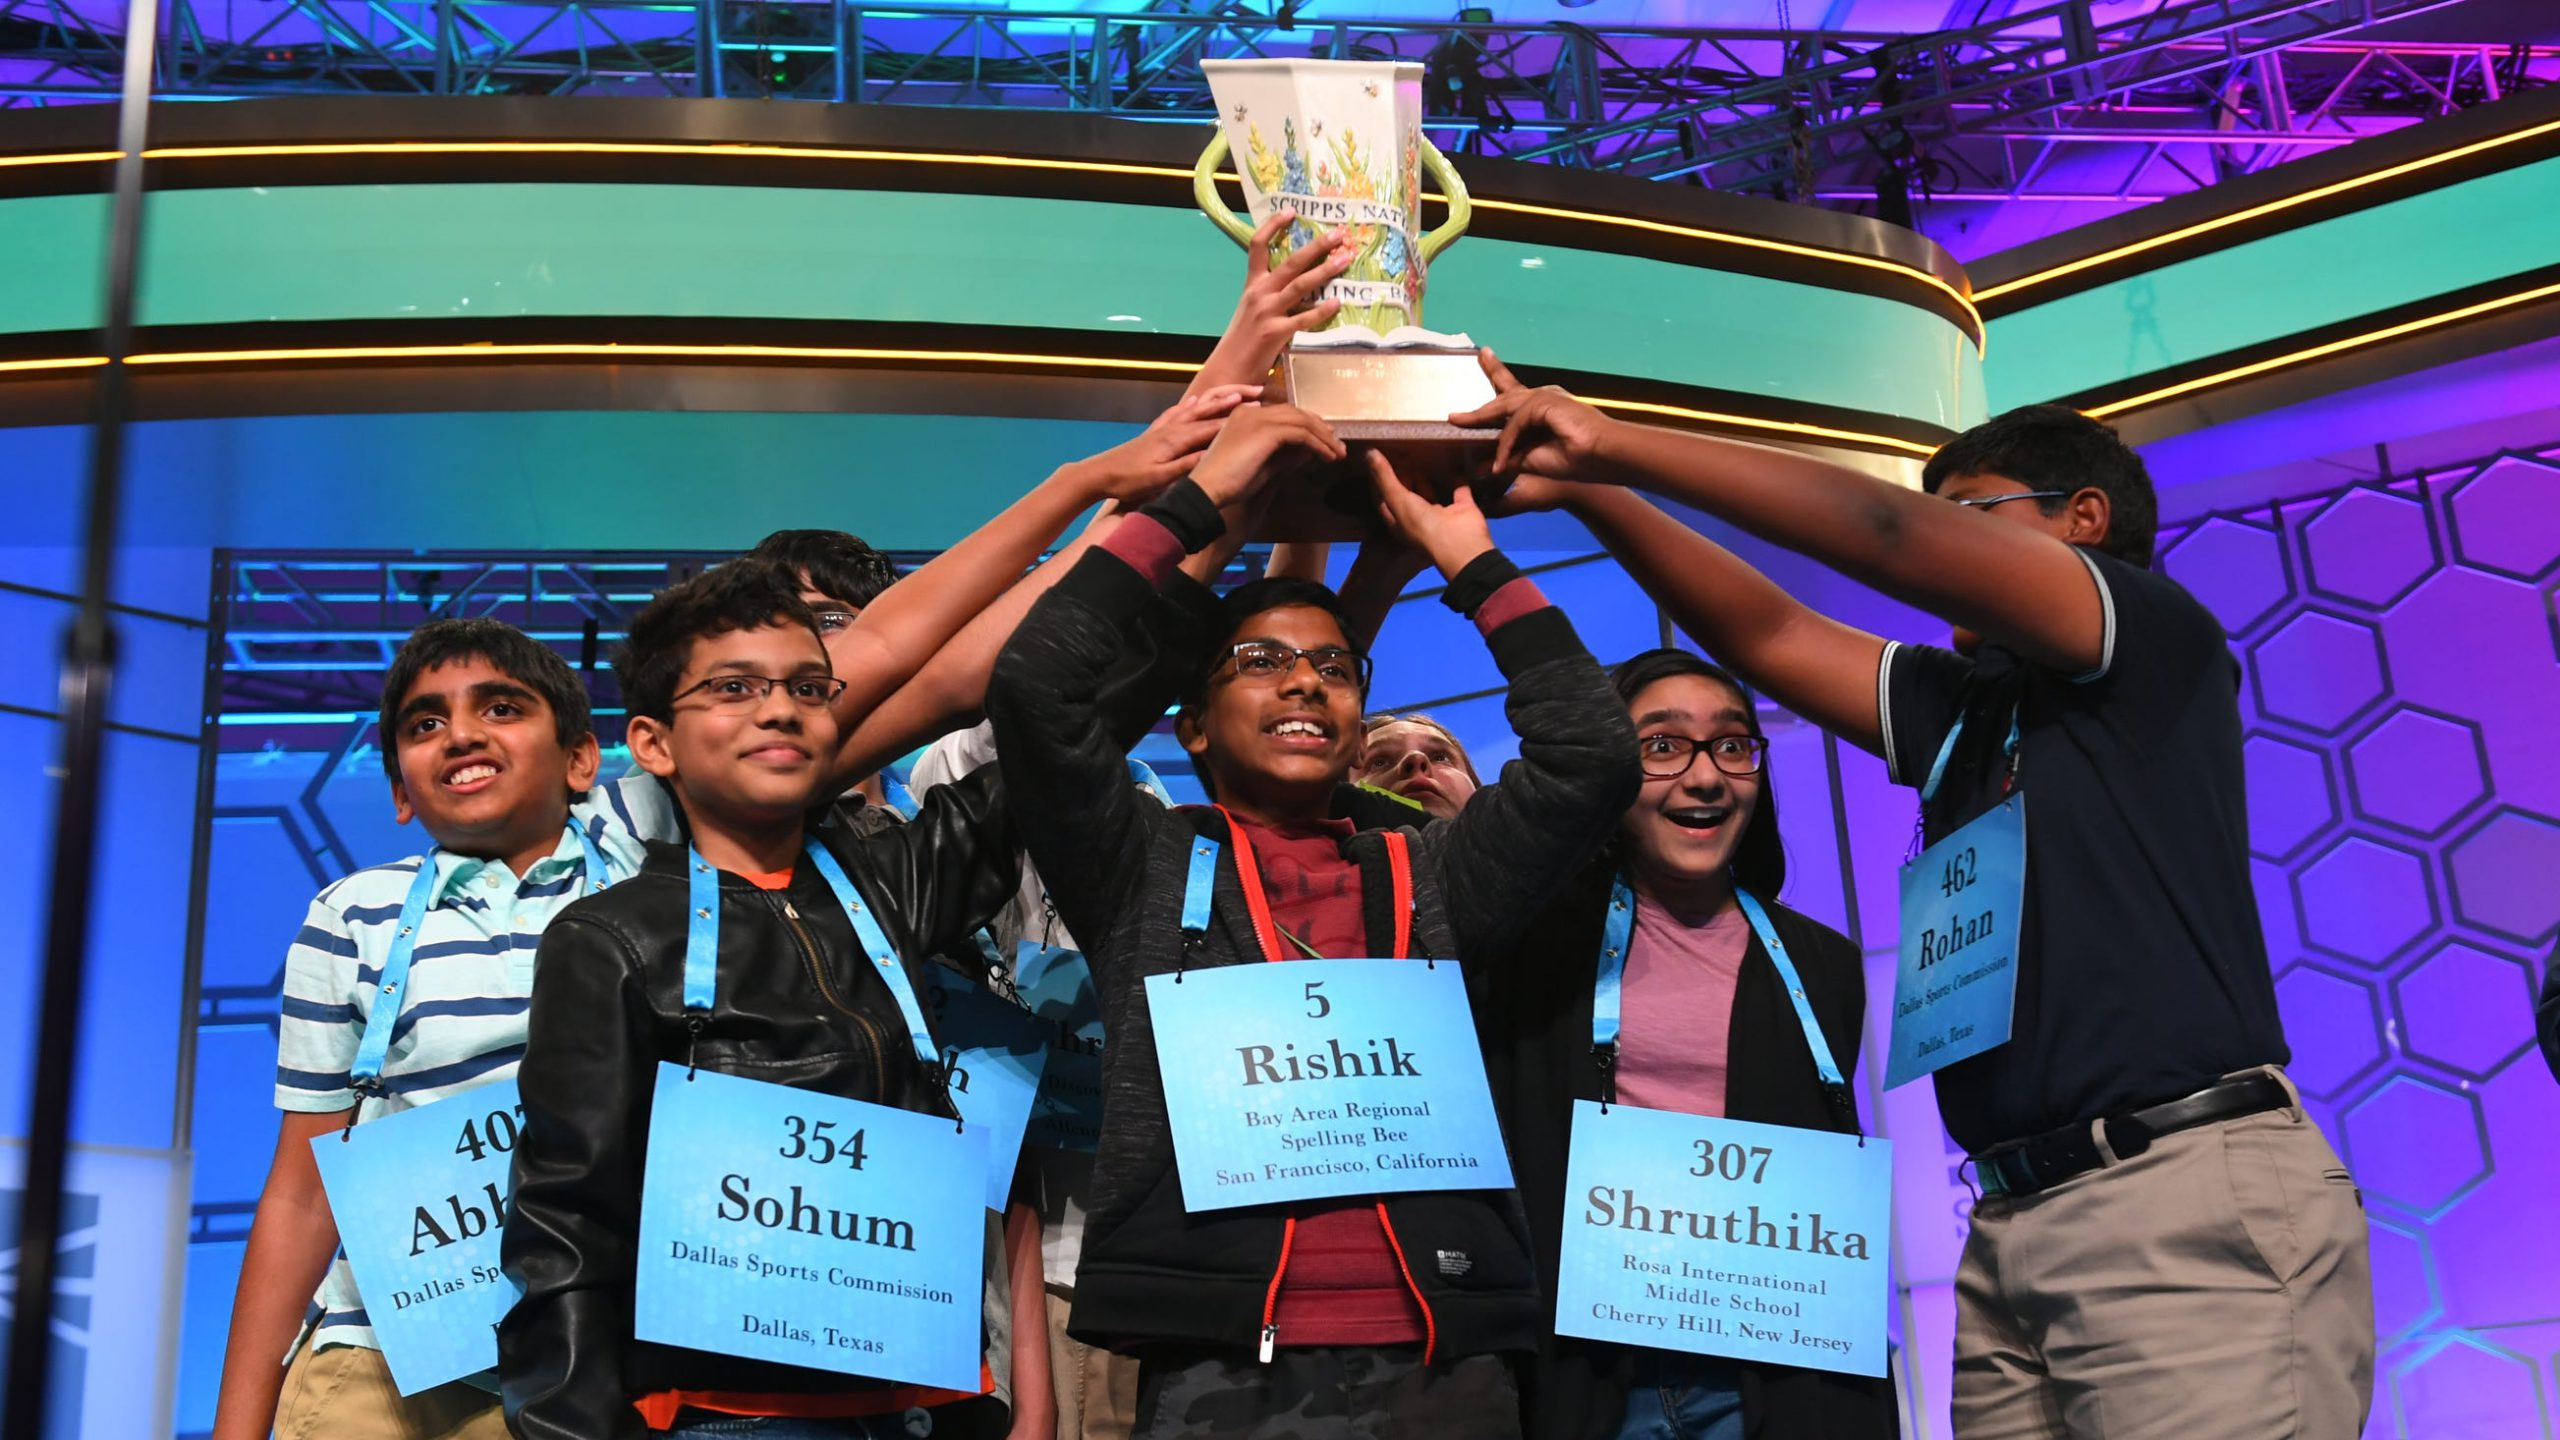 G-O-O-D-B-Y-E to the 2020 Scripps National Spelling Bee